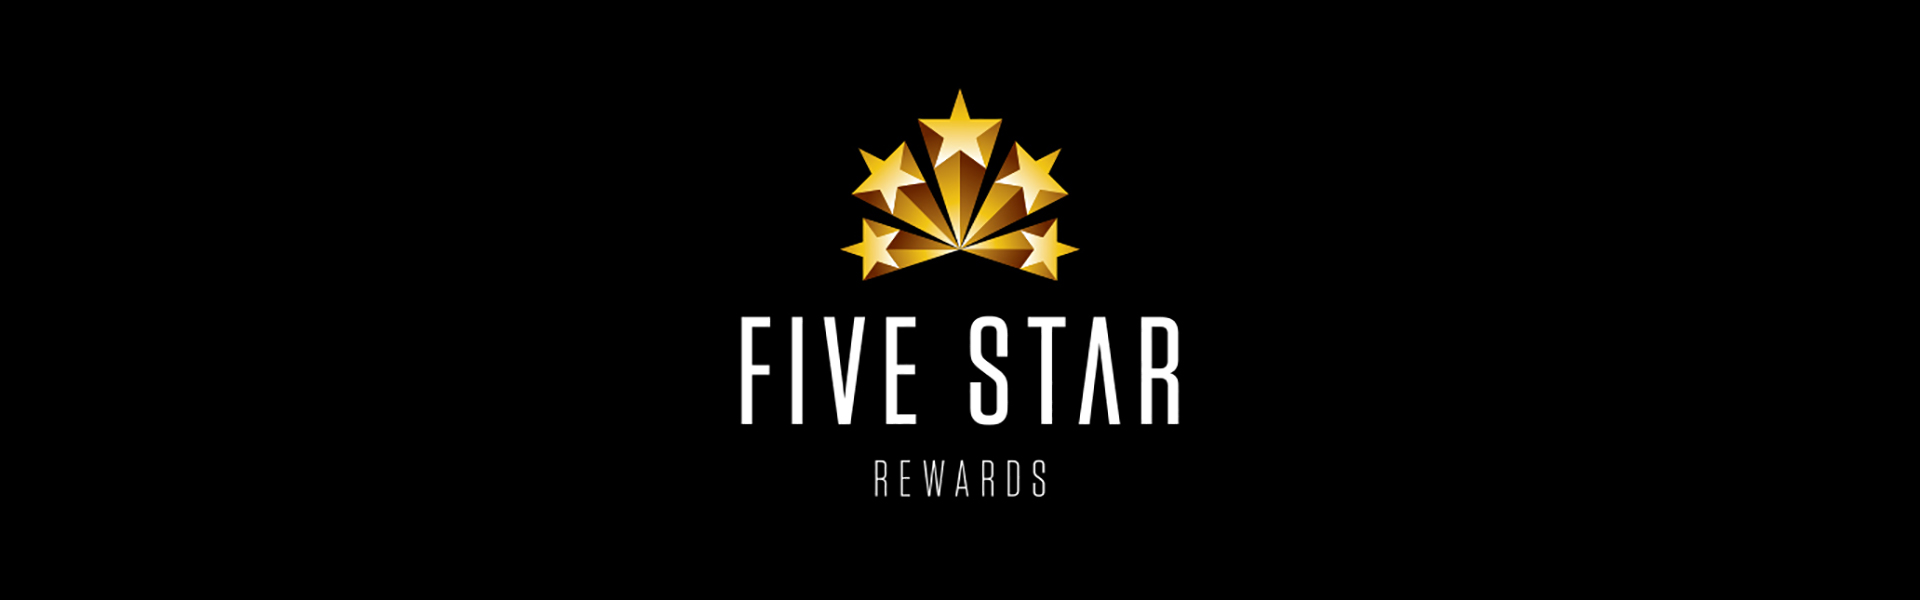 5 Star Rewards Page Title